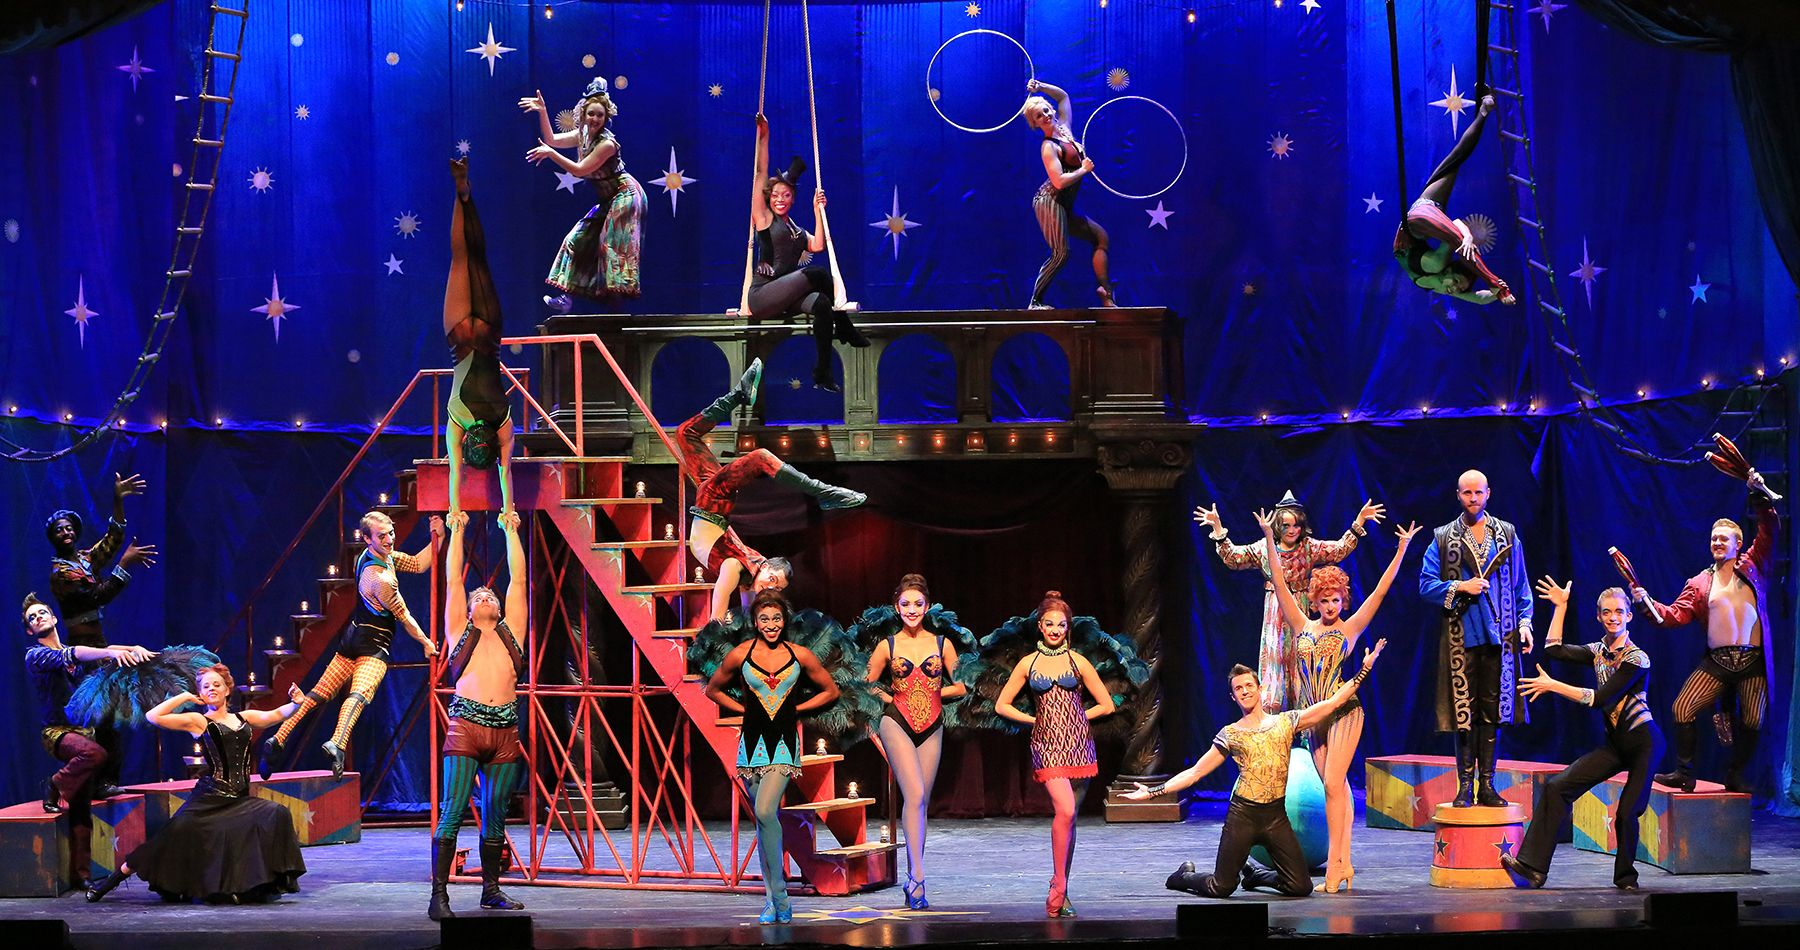 'Pippin' play dates, times and ticket info